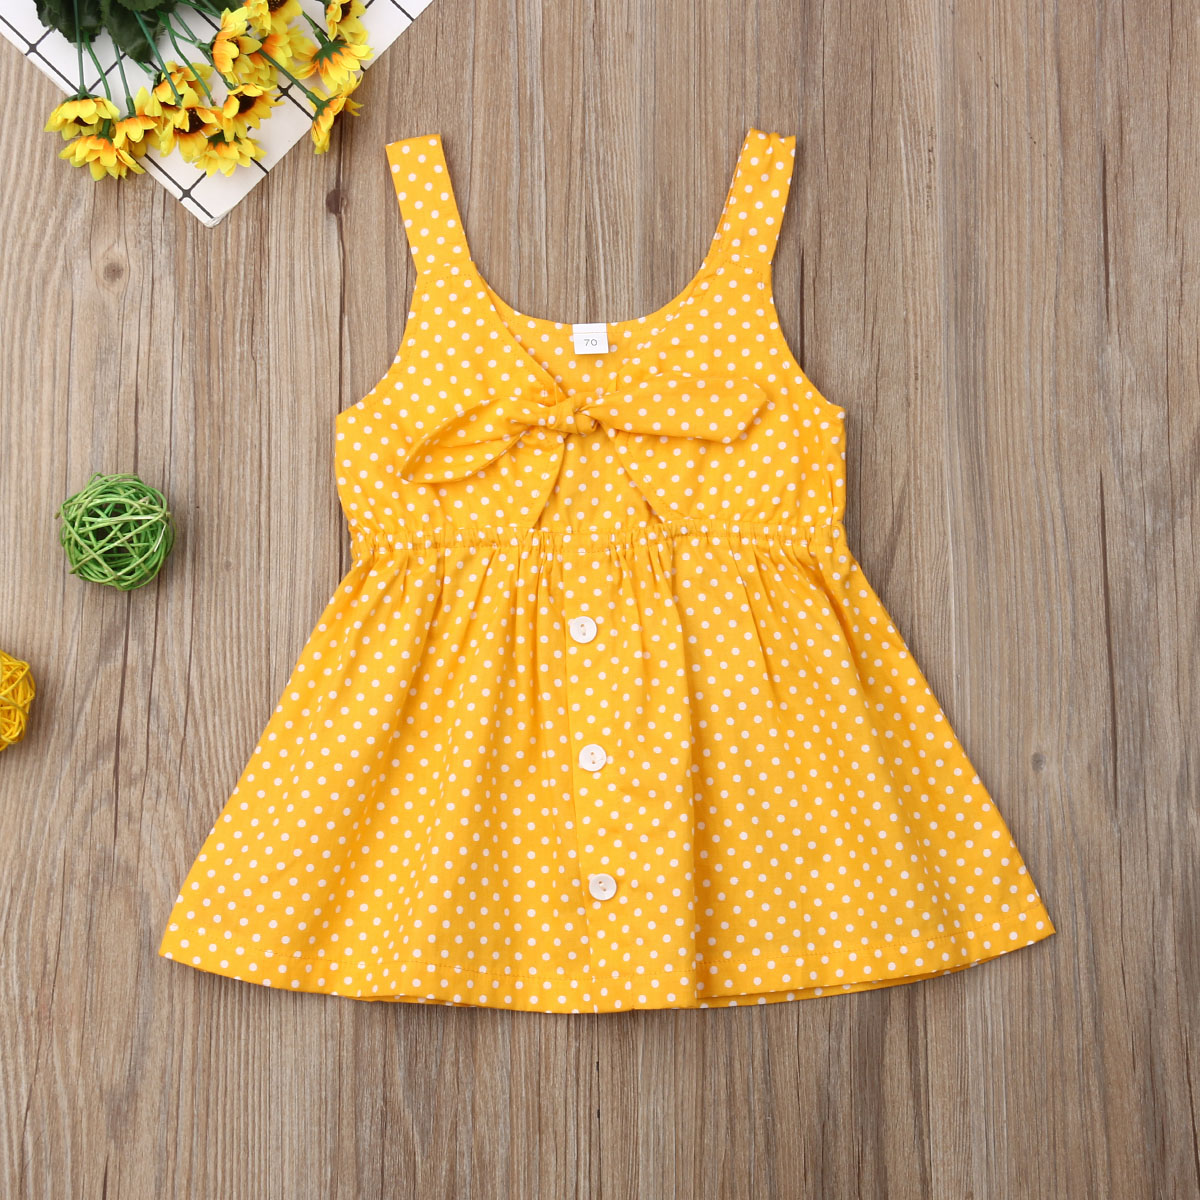 Emmababy Summer Newest Fashion Toddler Kids Baby Girl Clothes Sleeveless Solid Color Polka Dot Dress One-Piece Outfit Sundress